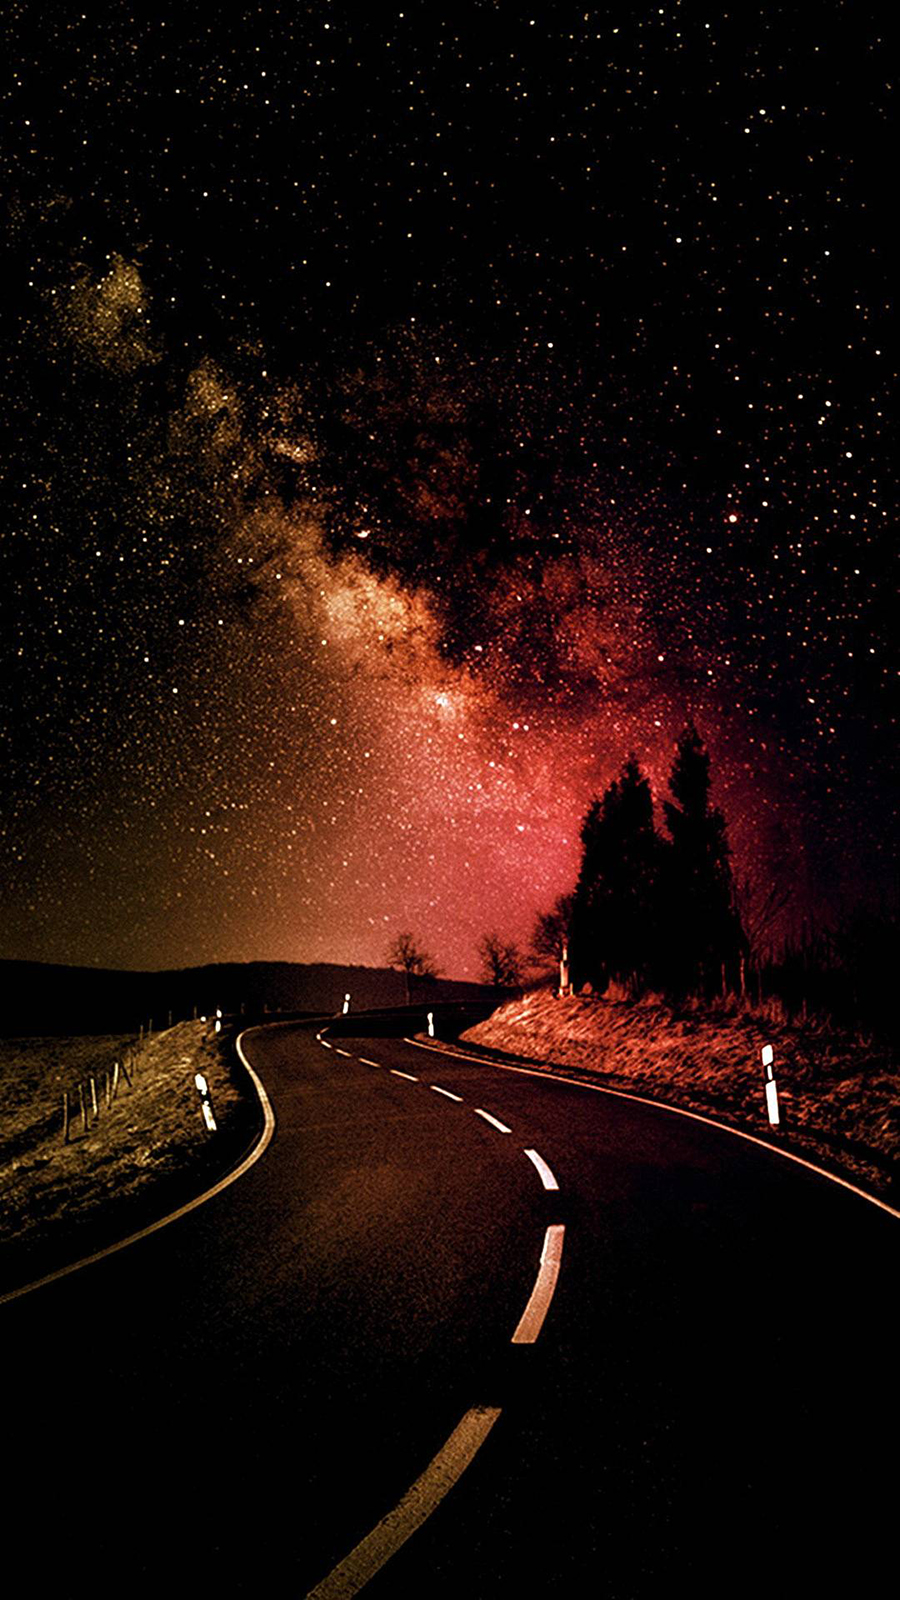 Road Night Wallpapers Now Download For Your Device